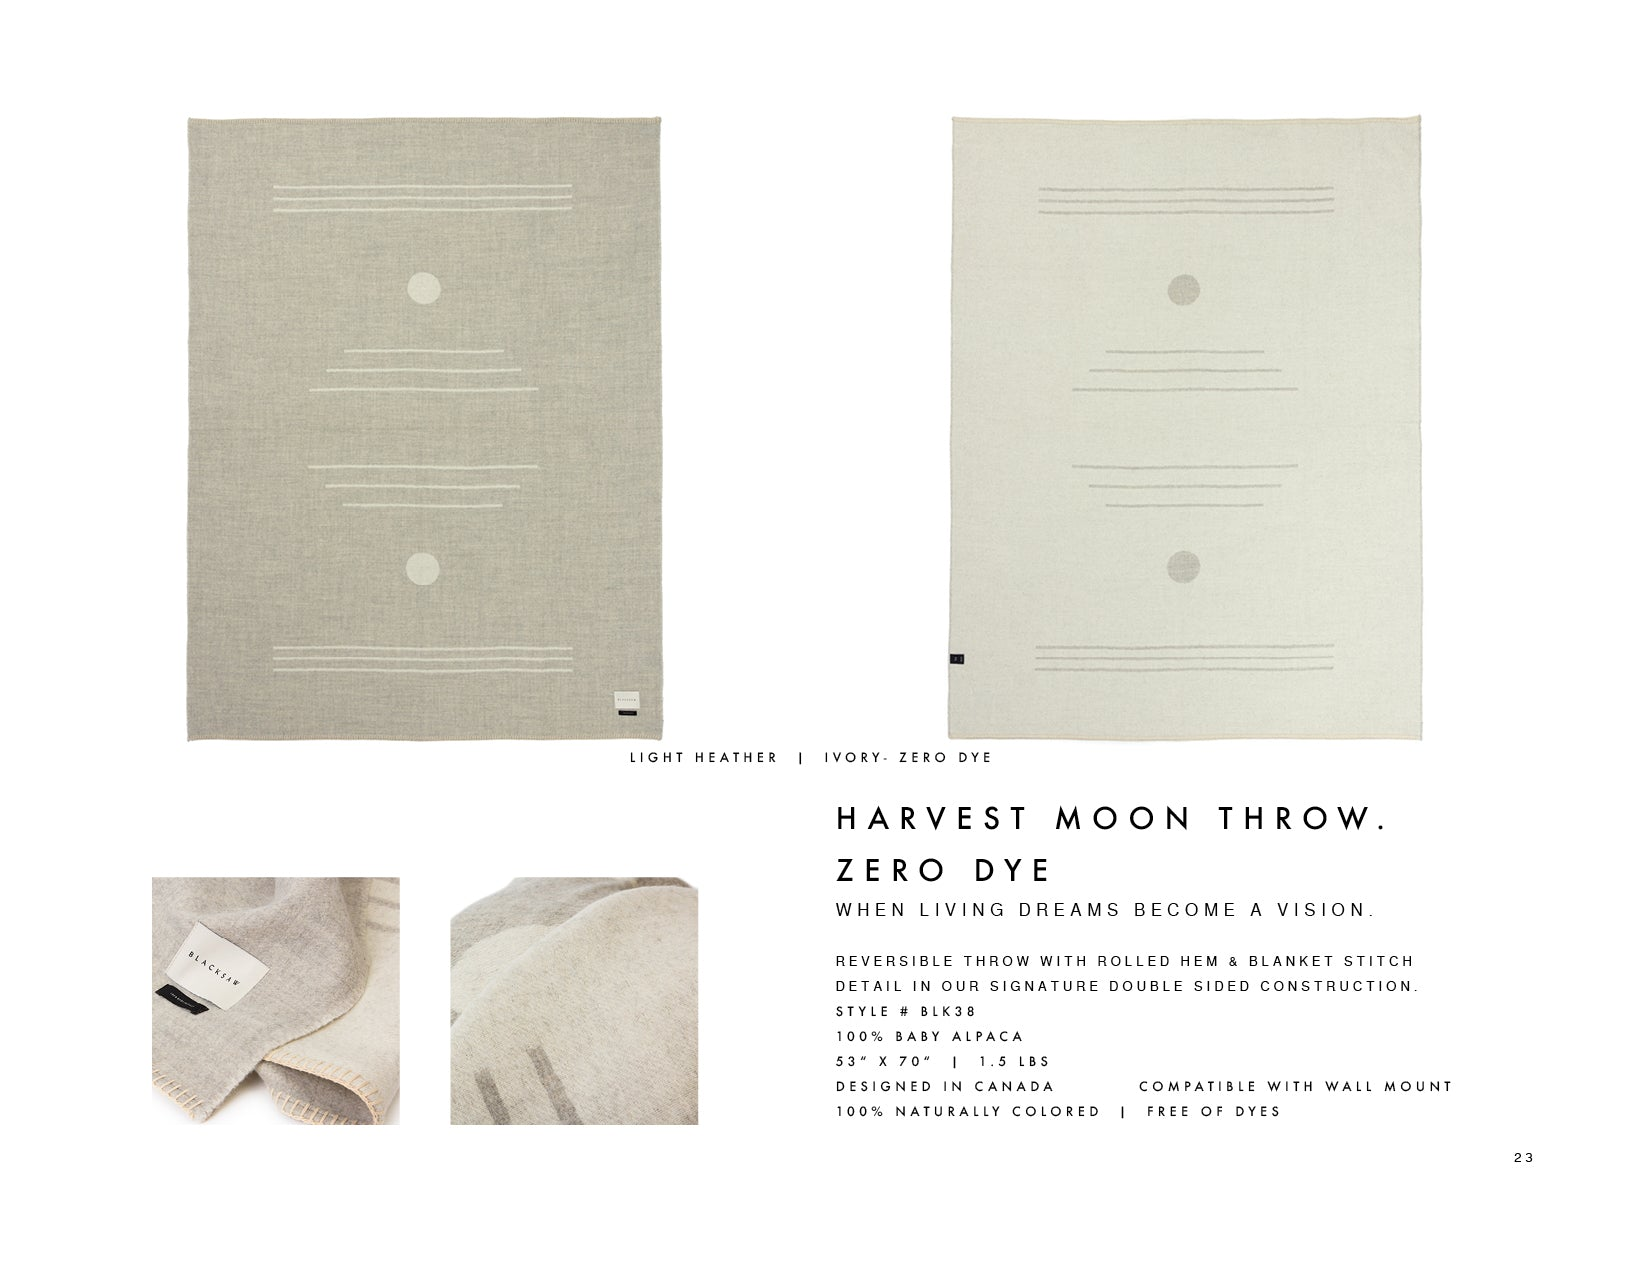 Blacksaw Harvest Moon Zero dye